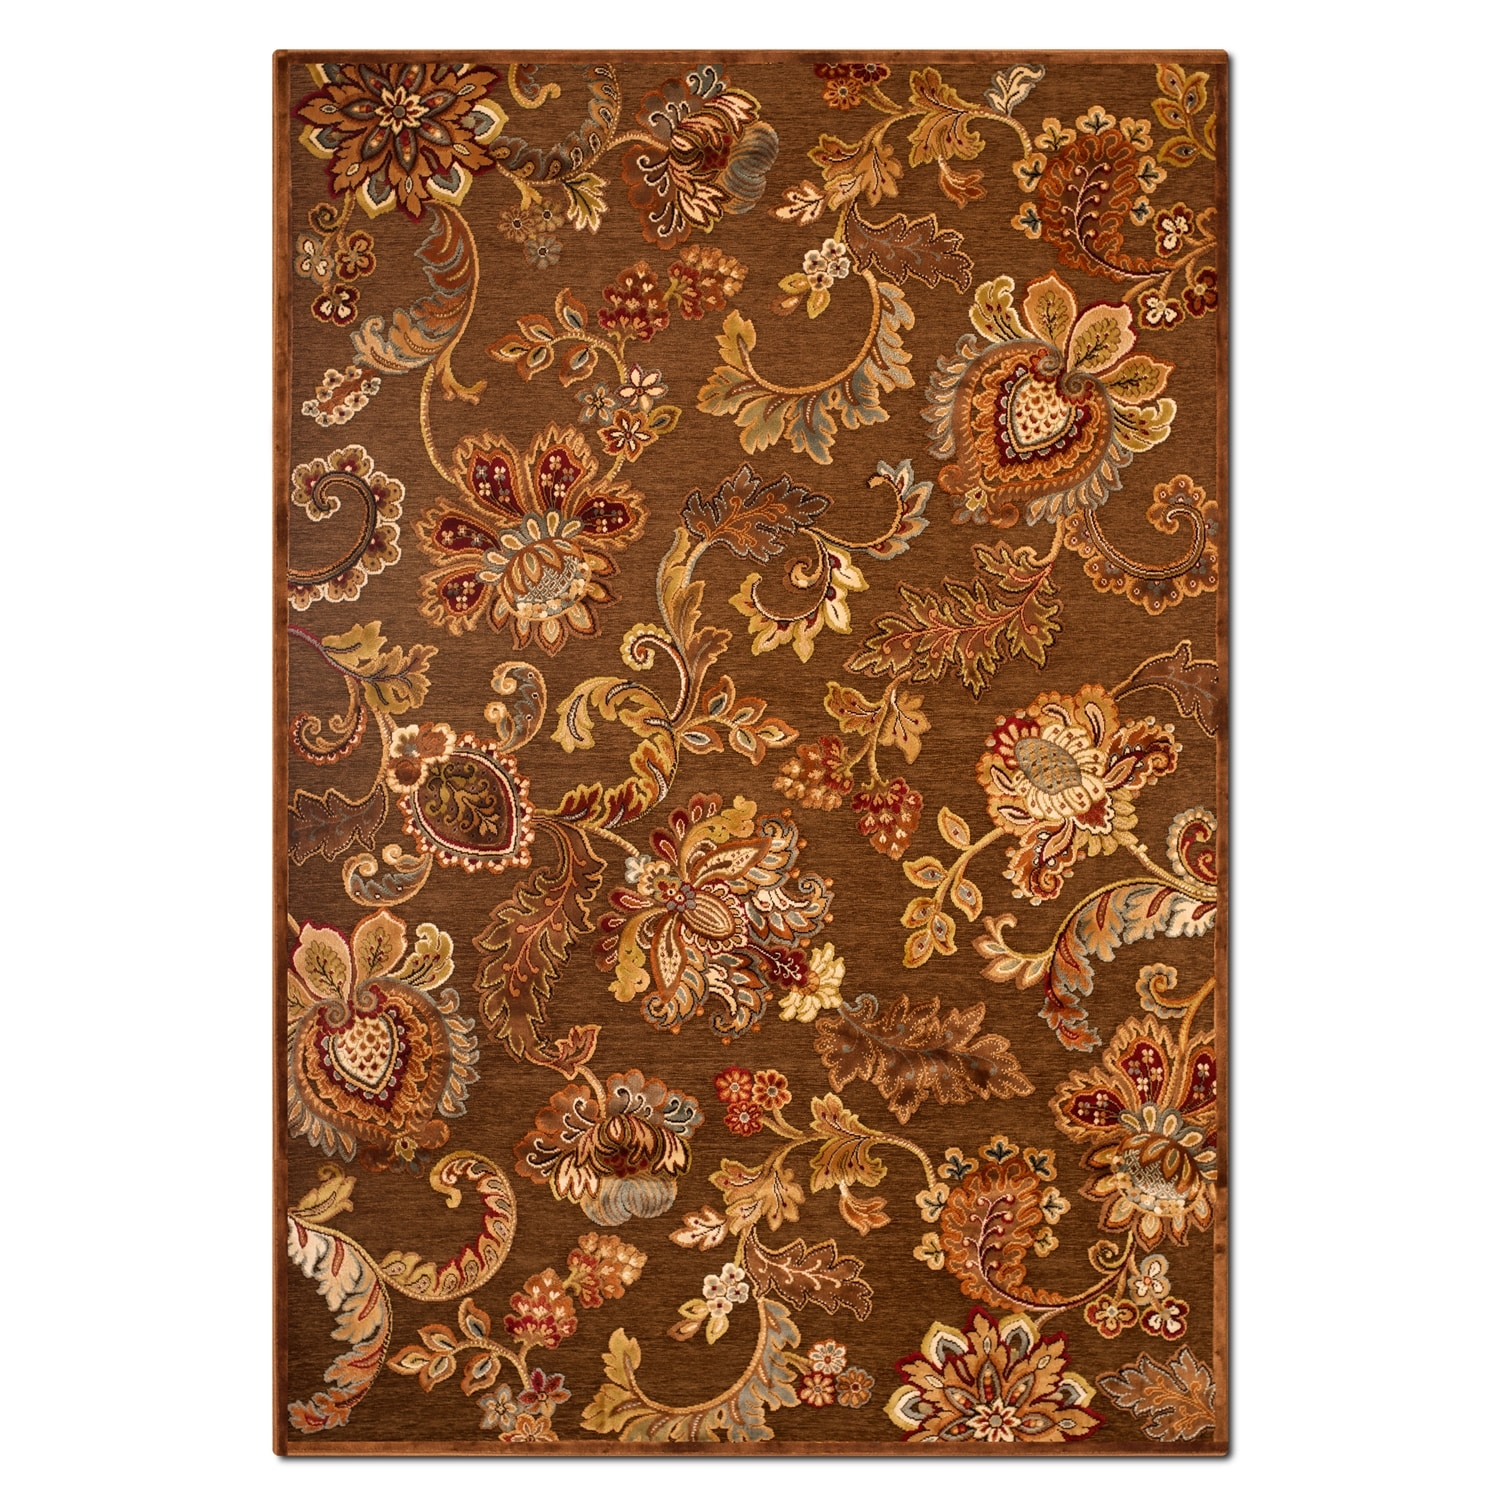 Rugs - Napa Meadow 8' x 10' Area Rug - Medium Brown and Rust